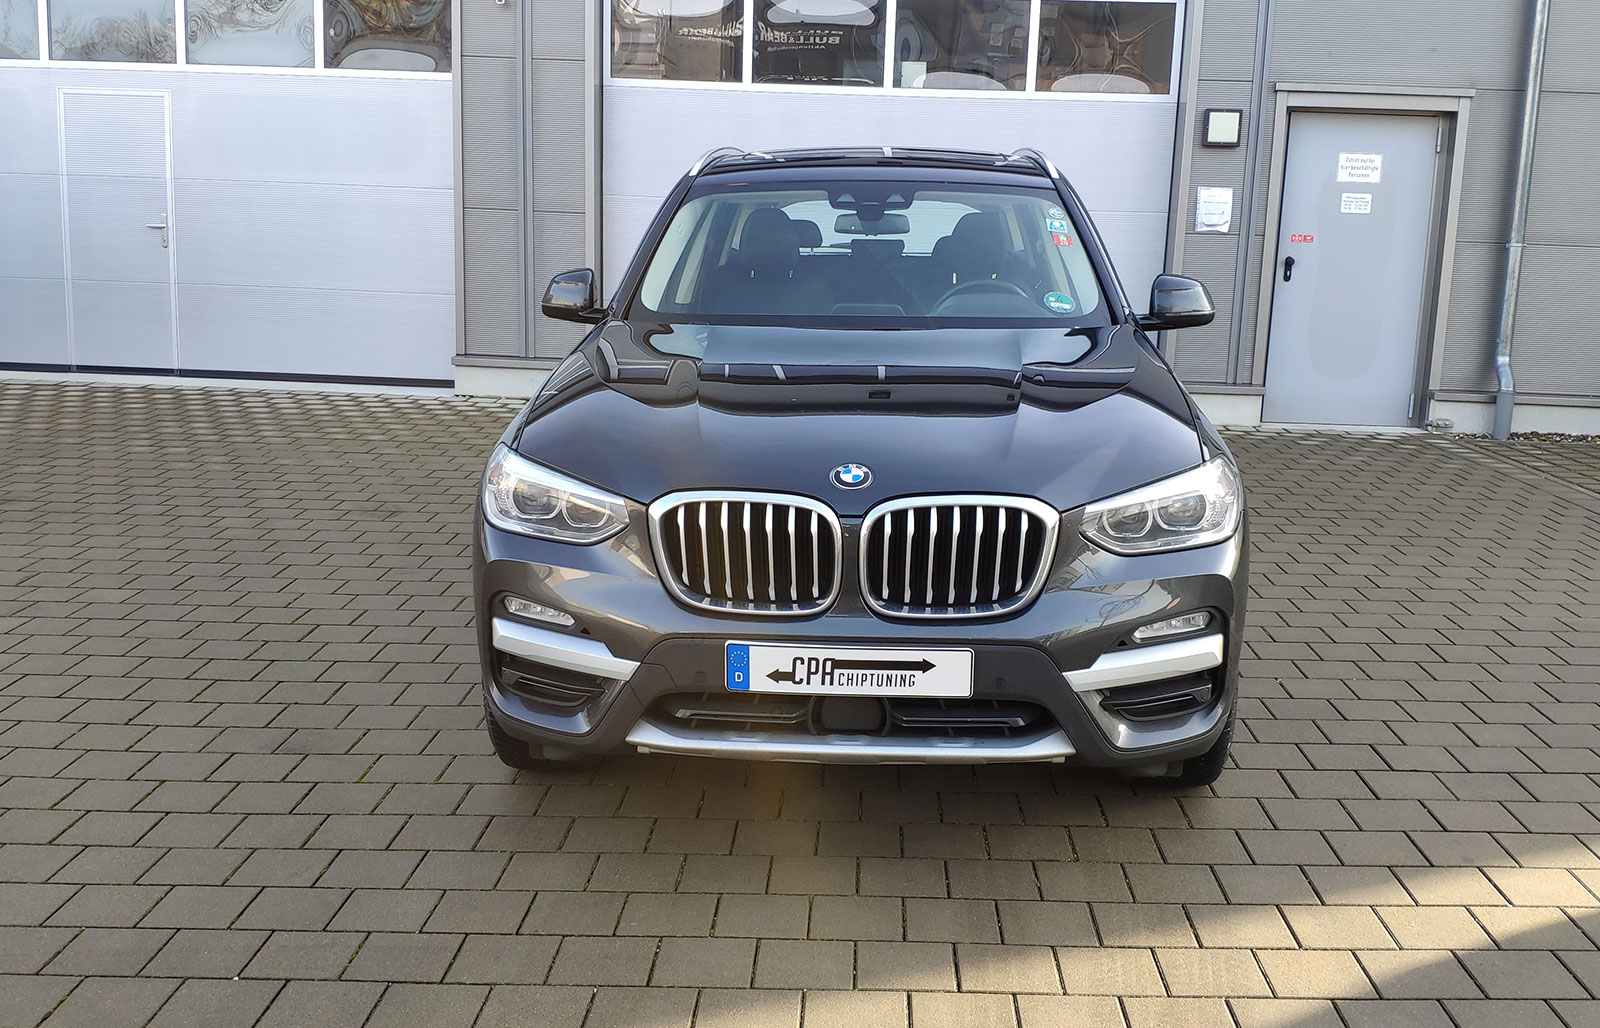 BMW X3 (G01) xDrive20d in teste